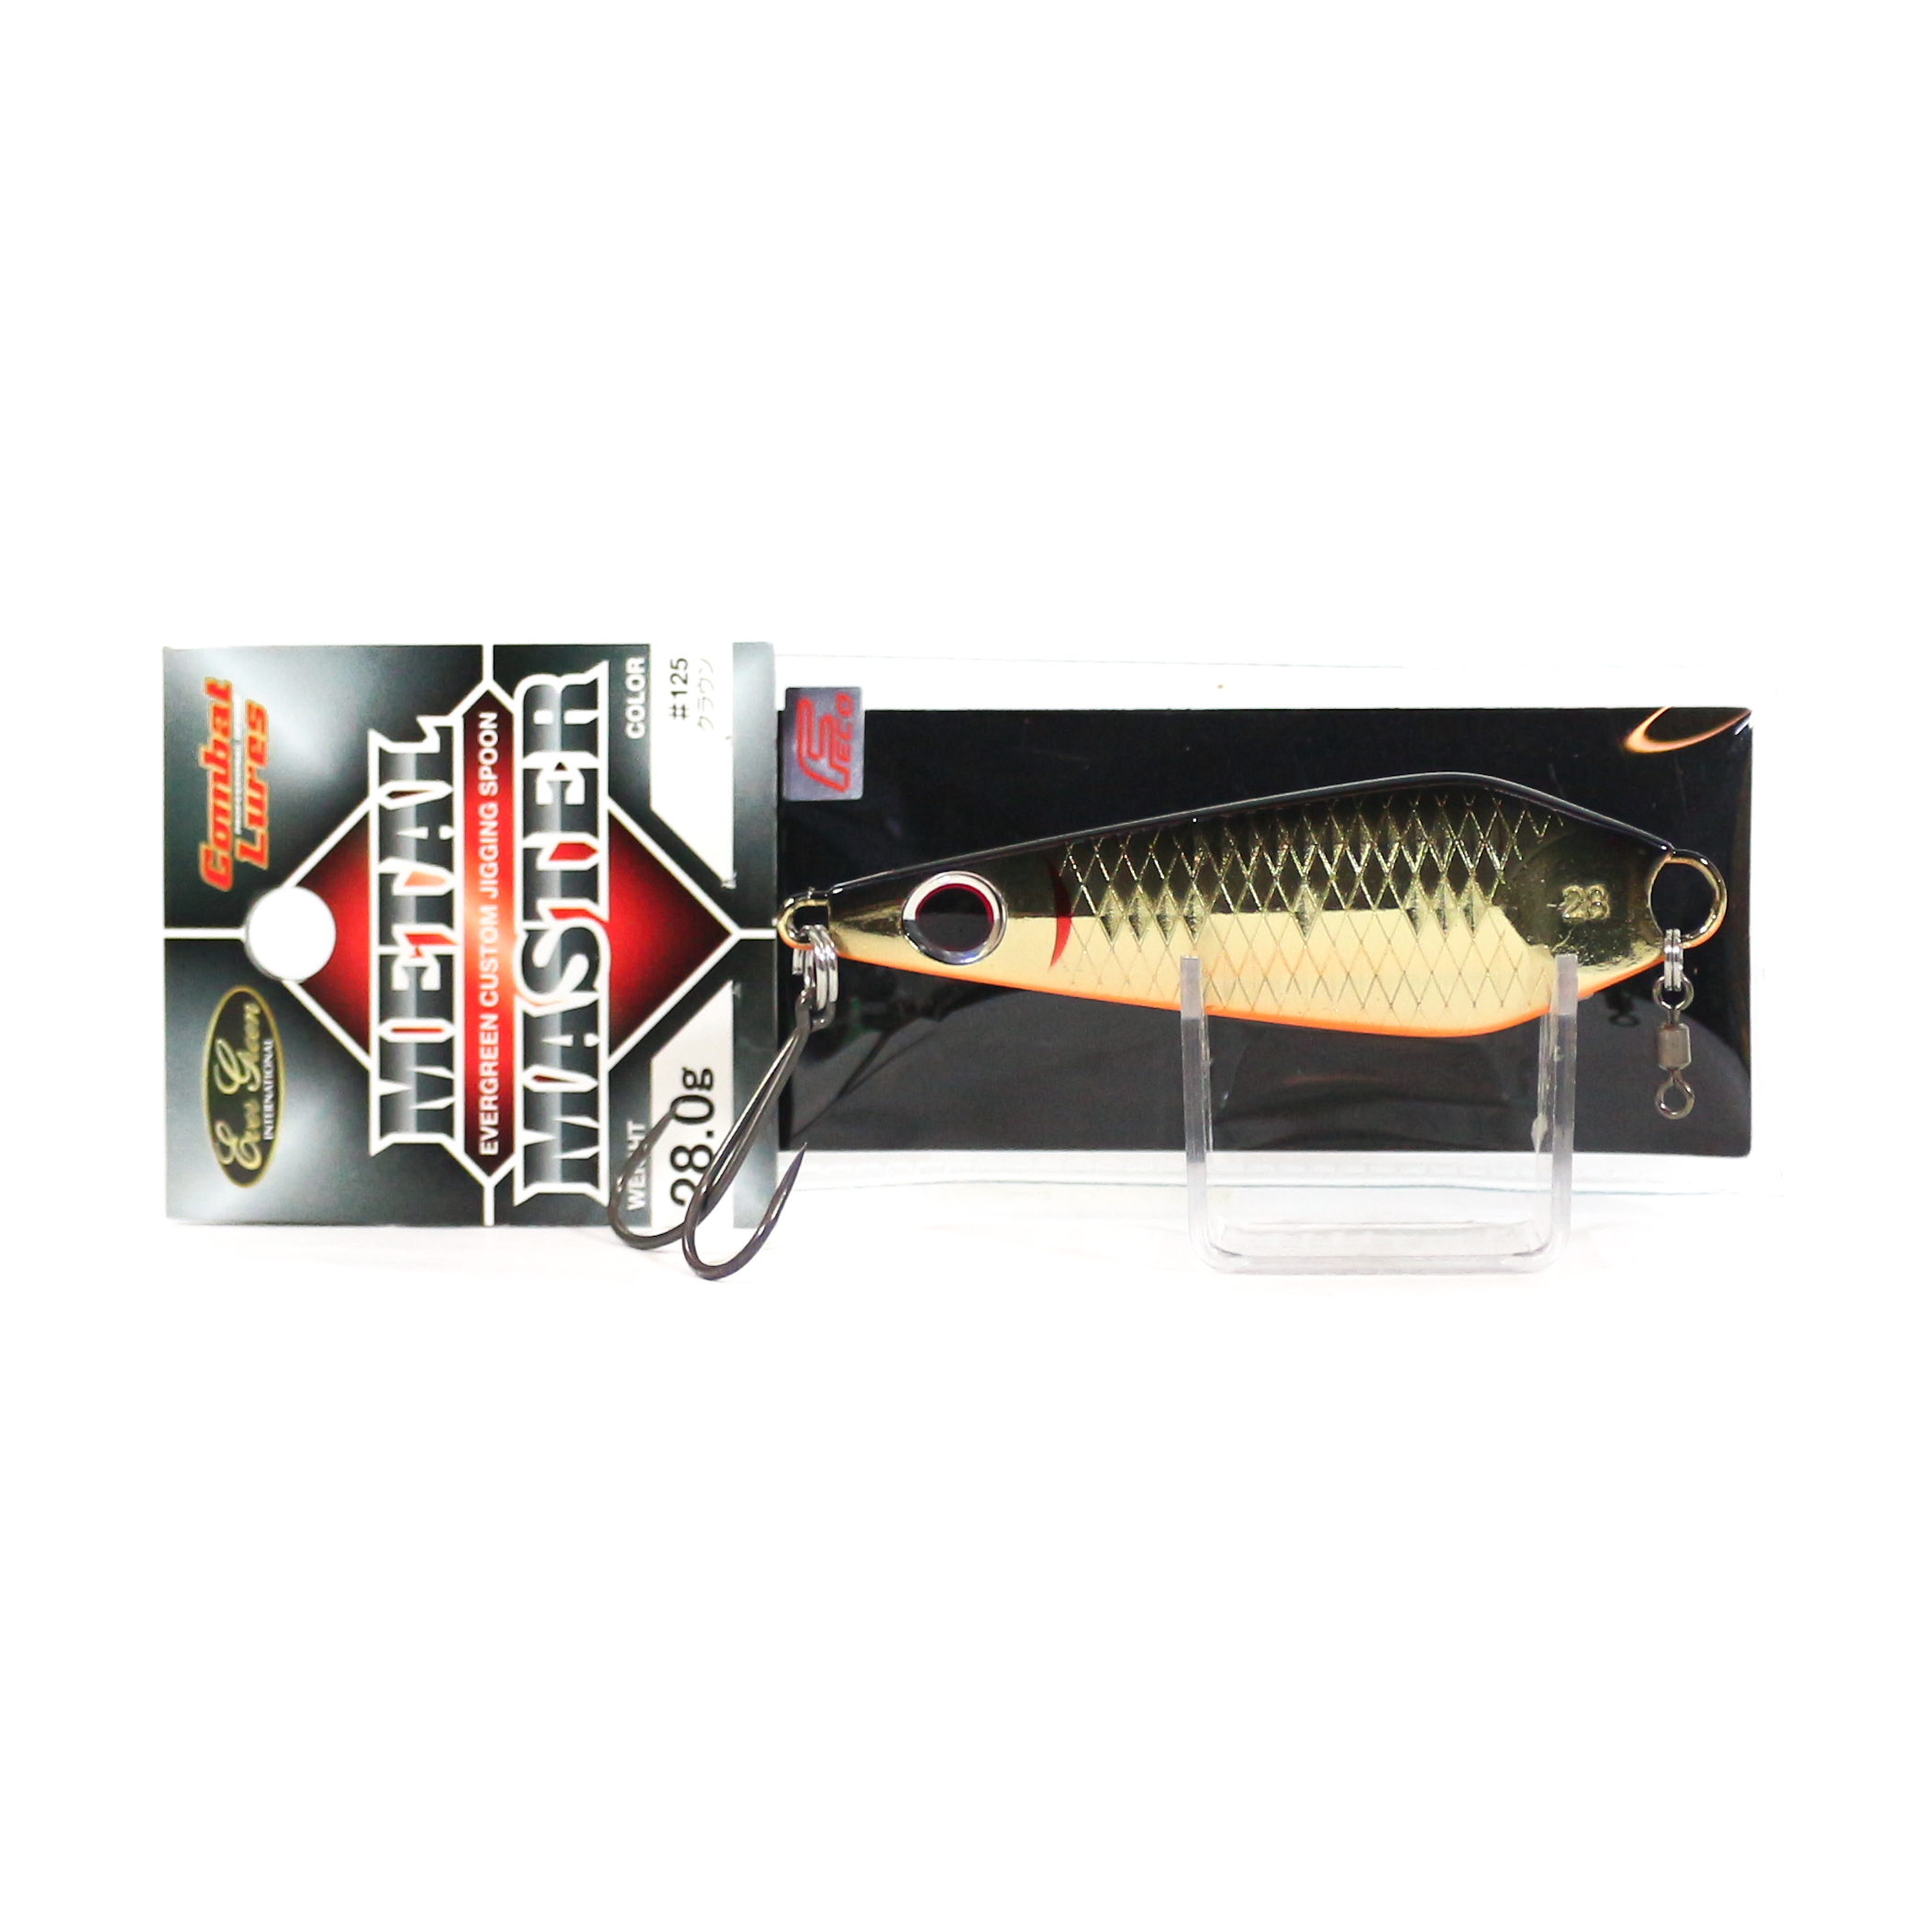 Evergreen Metal Master Custom Jigging Spoon 28 grams 25 (6260)